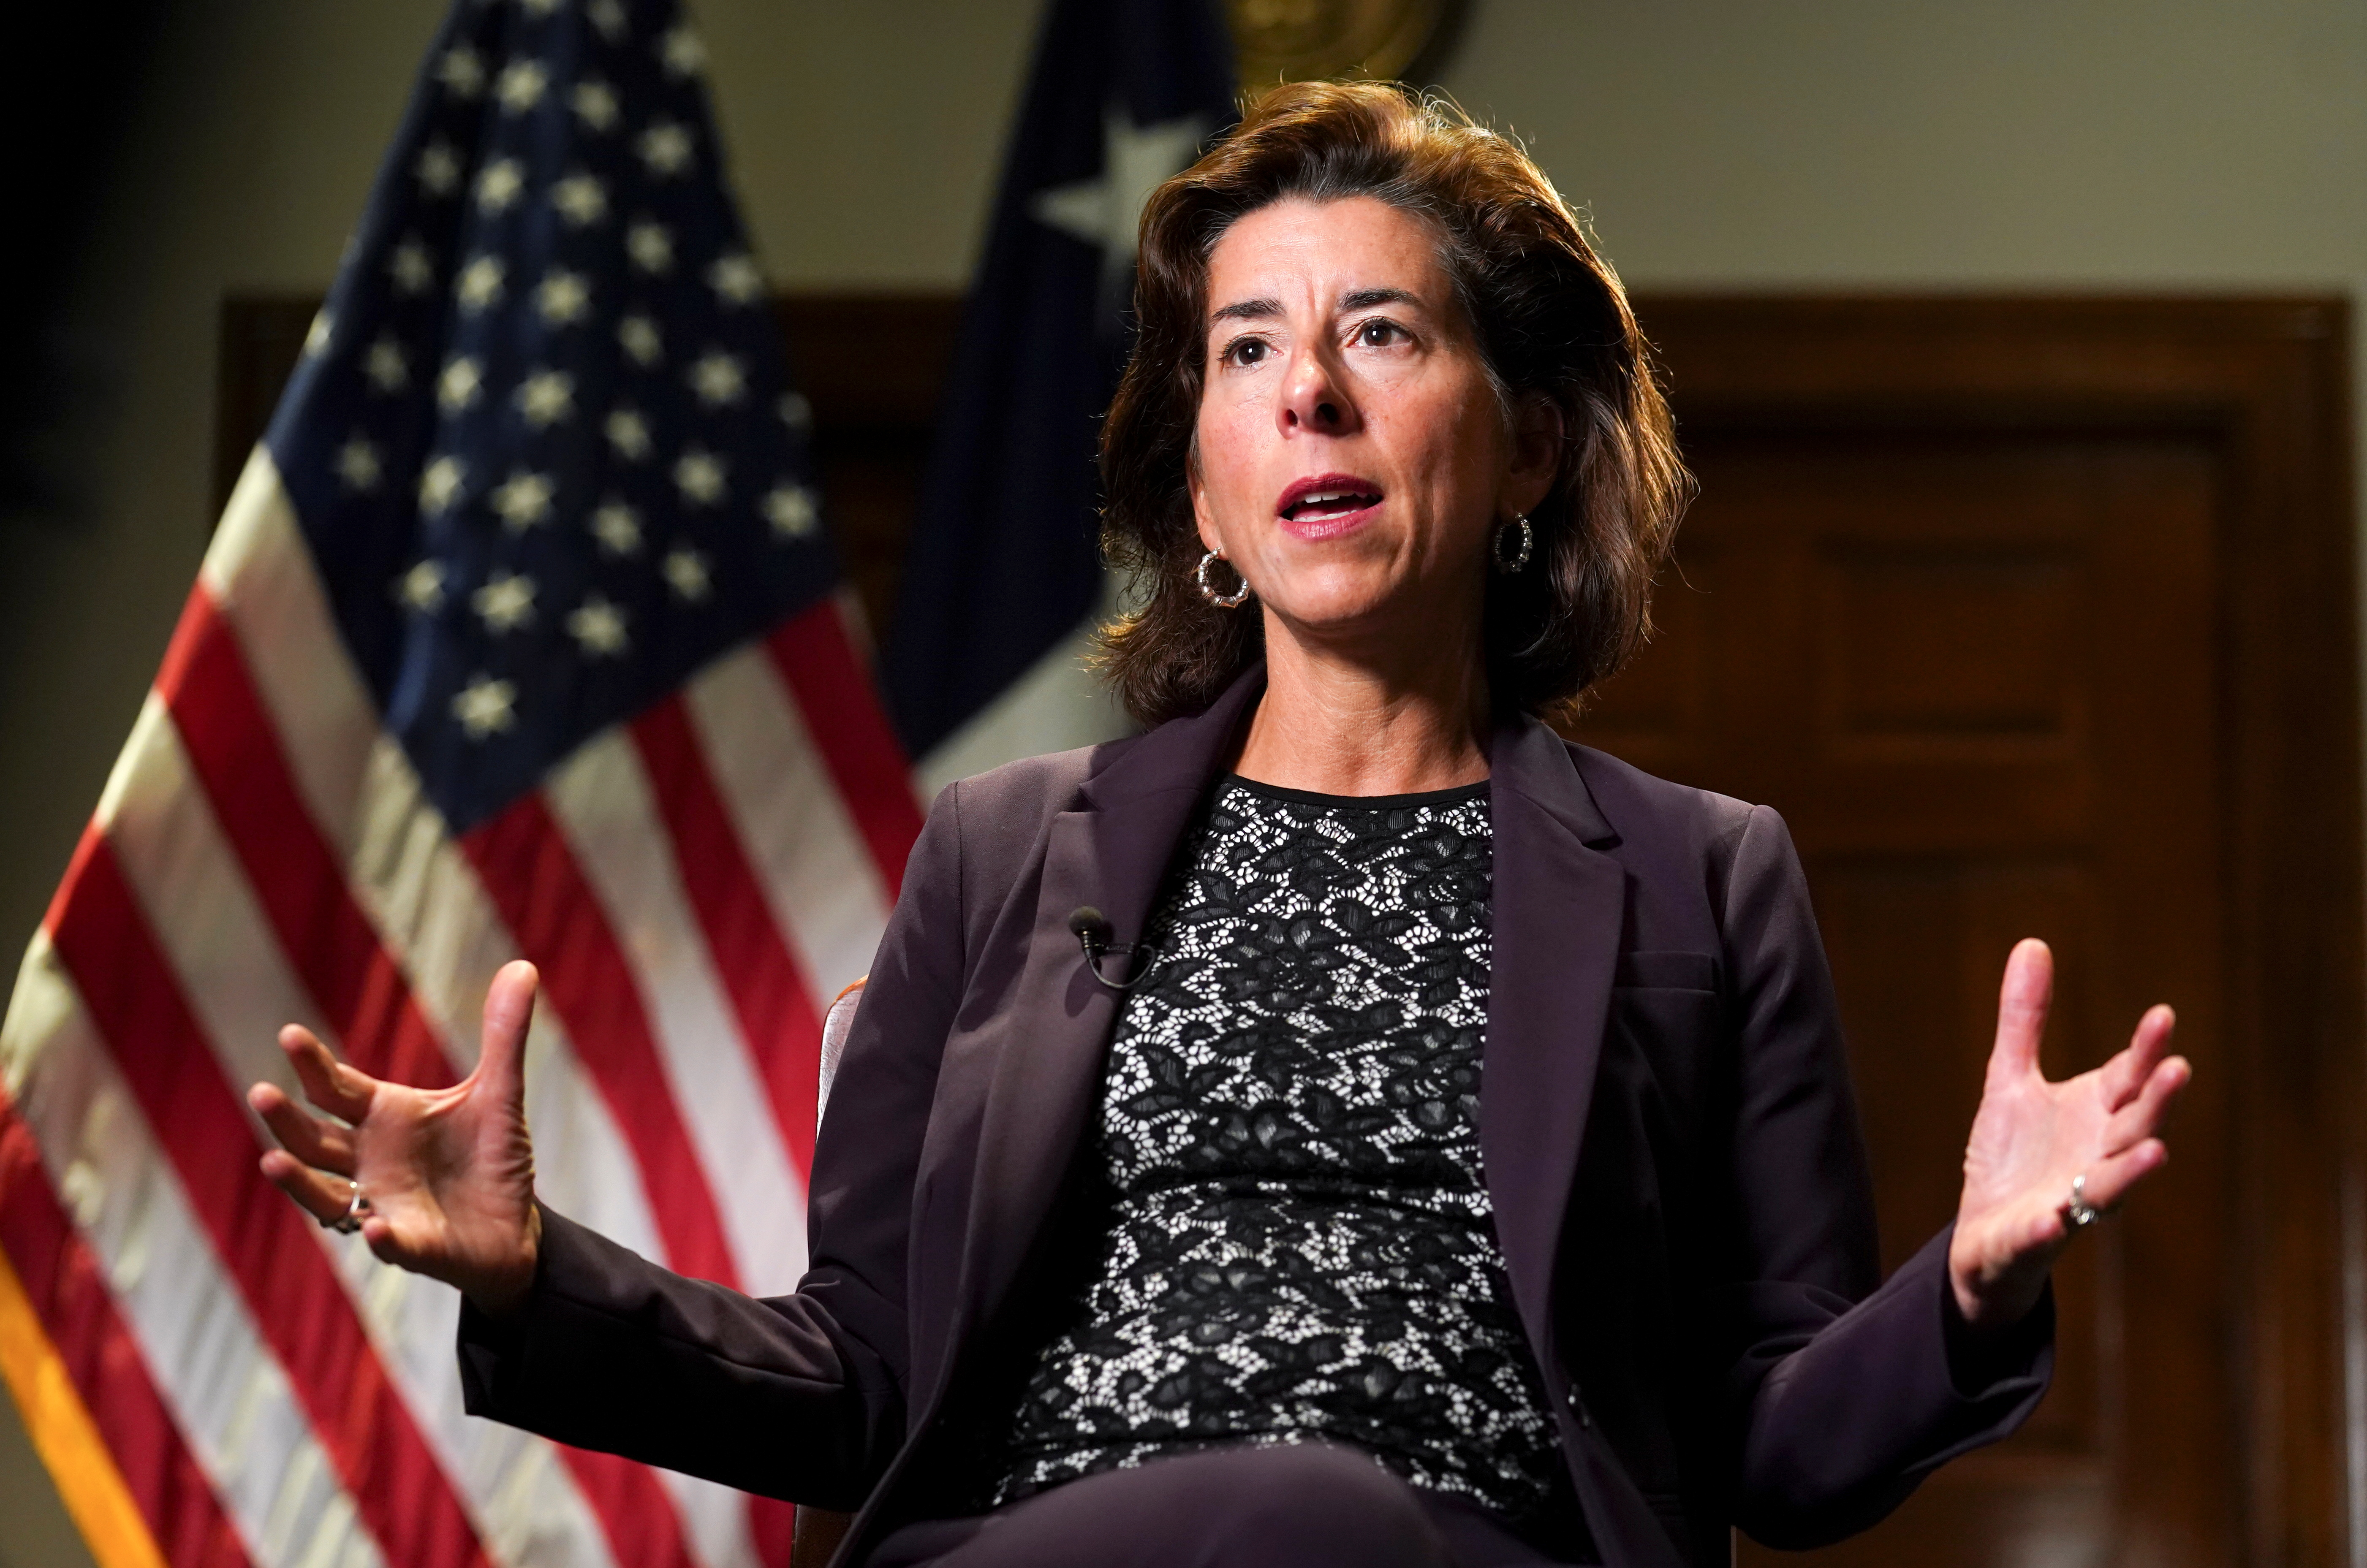 U.S. Commerce Secretary Gina Raimondo speaks during a Reuters interview at the Department of Commerce in Washington U.S., September 23, 2021. REUTERS/Kevin Lamarque